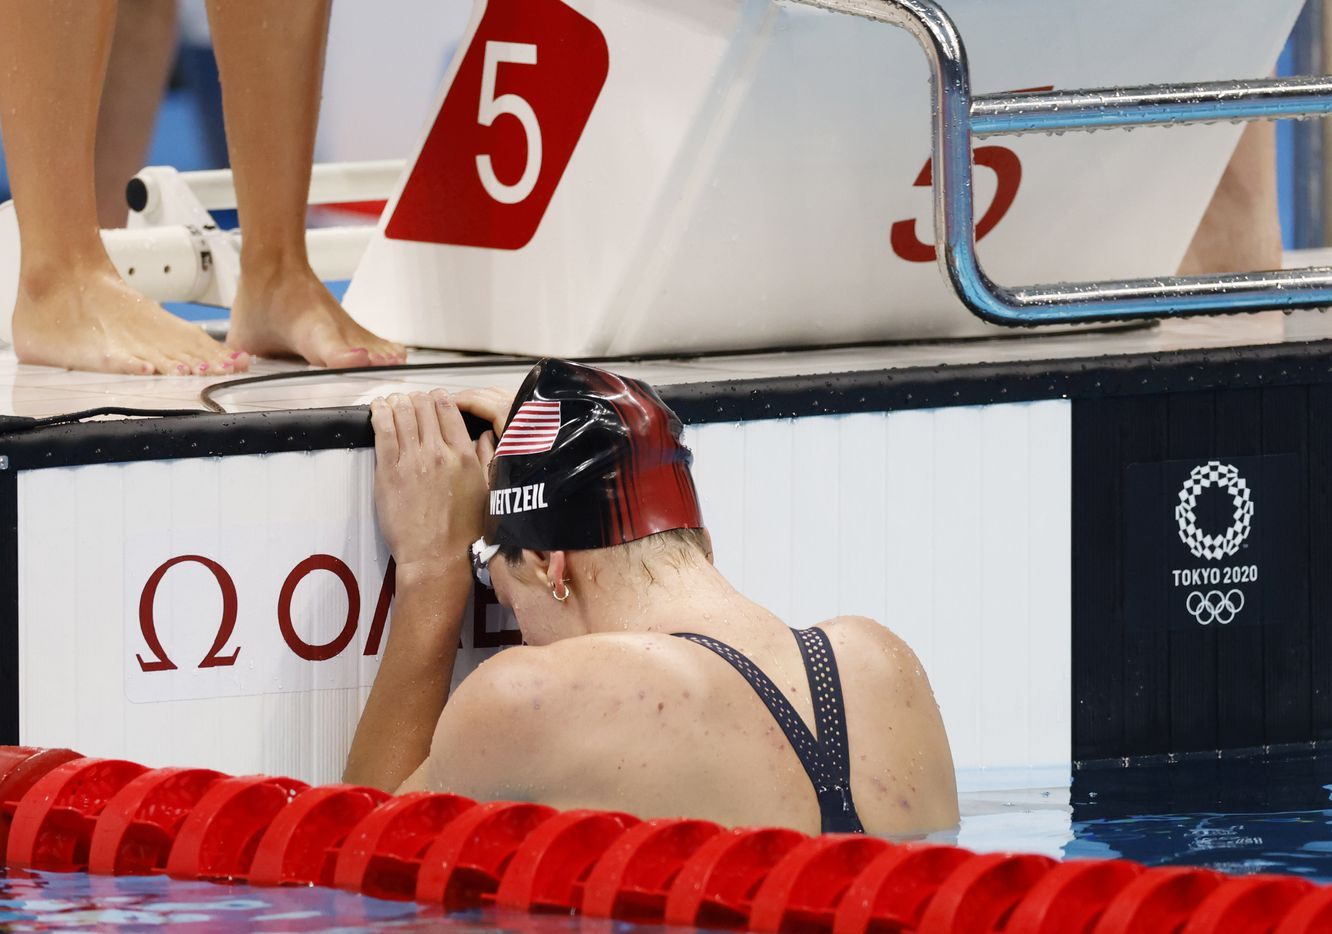 USA's Abbey Weitzeil after she finished the last leg of the women's 4x100 medley relay during the postponed 2020 Tokyo Olympics at Tokyo Aquatics Centre, on Sunday, August 1, 2021, in Tokyo, Japan. USA finished in second with a time of 3:51.60 to earn a silver medal. (Vernon Bryant/The Dallas Morning News)